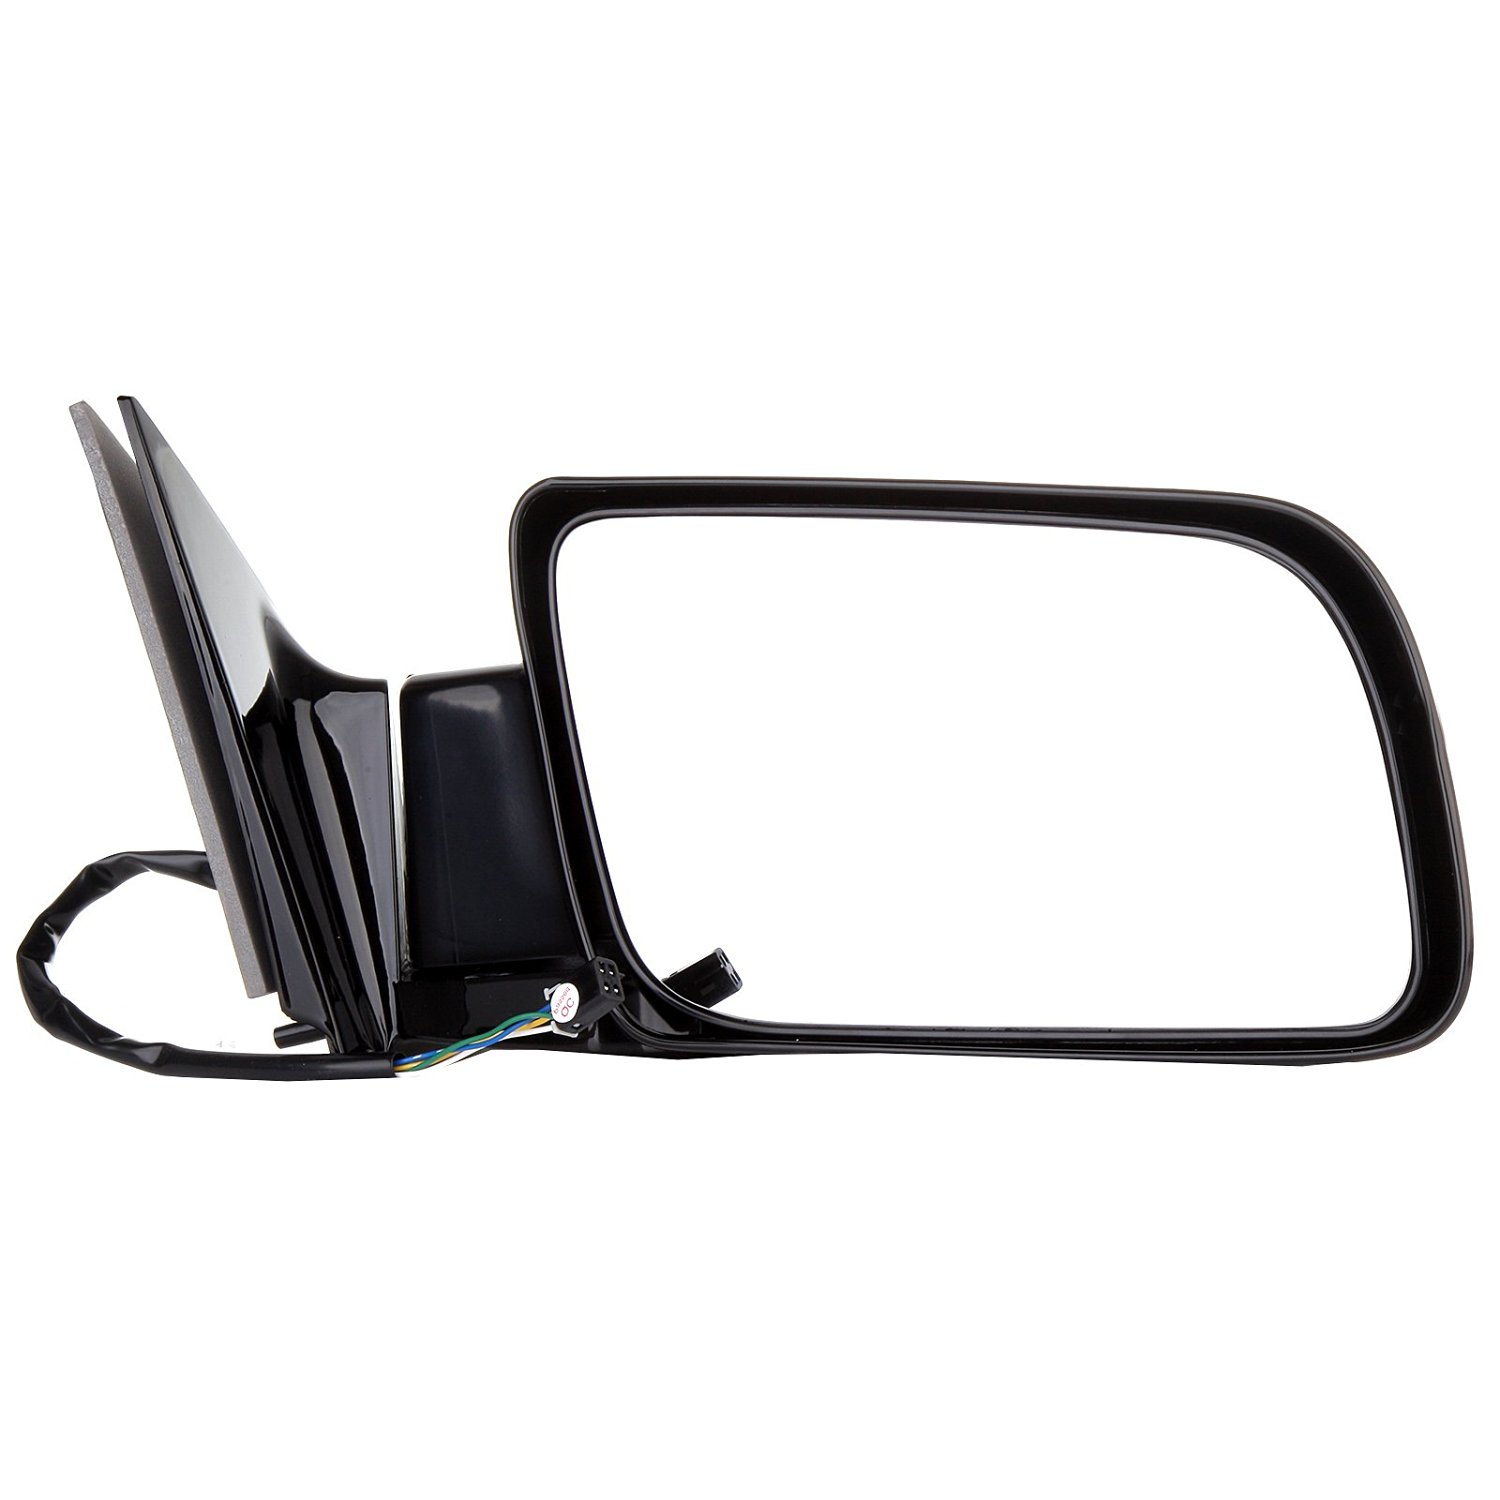 ECCPP Mirror Side View Power Folding Black Passenger side(RH) for 1988-00 Chevy GMC Pickup Truck GM1321122 128-2480R 15764758 955-192